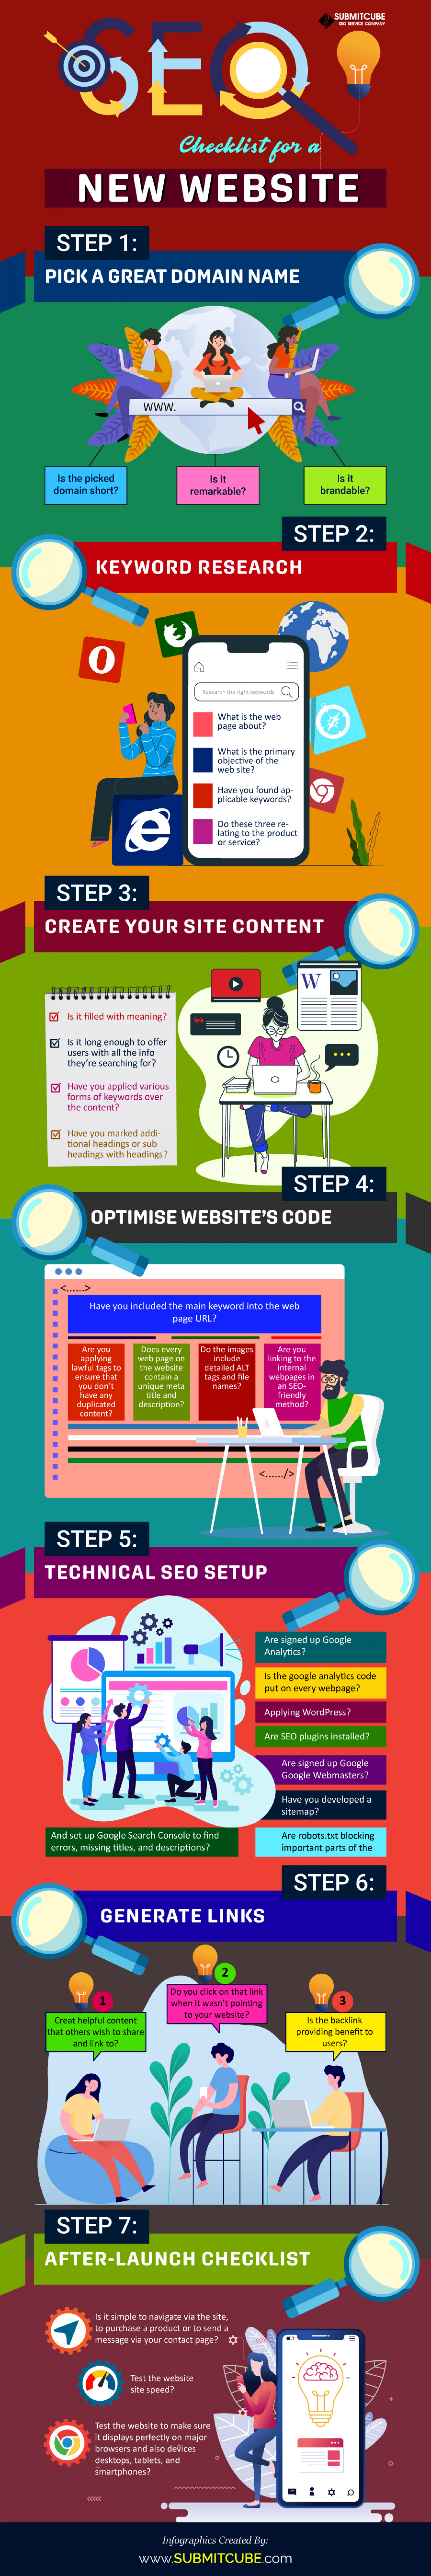 An Infographic on SEO Checklist for The New Website Infographic